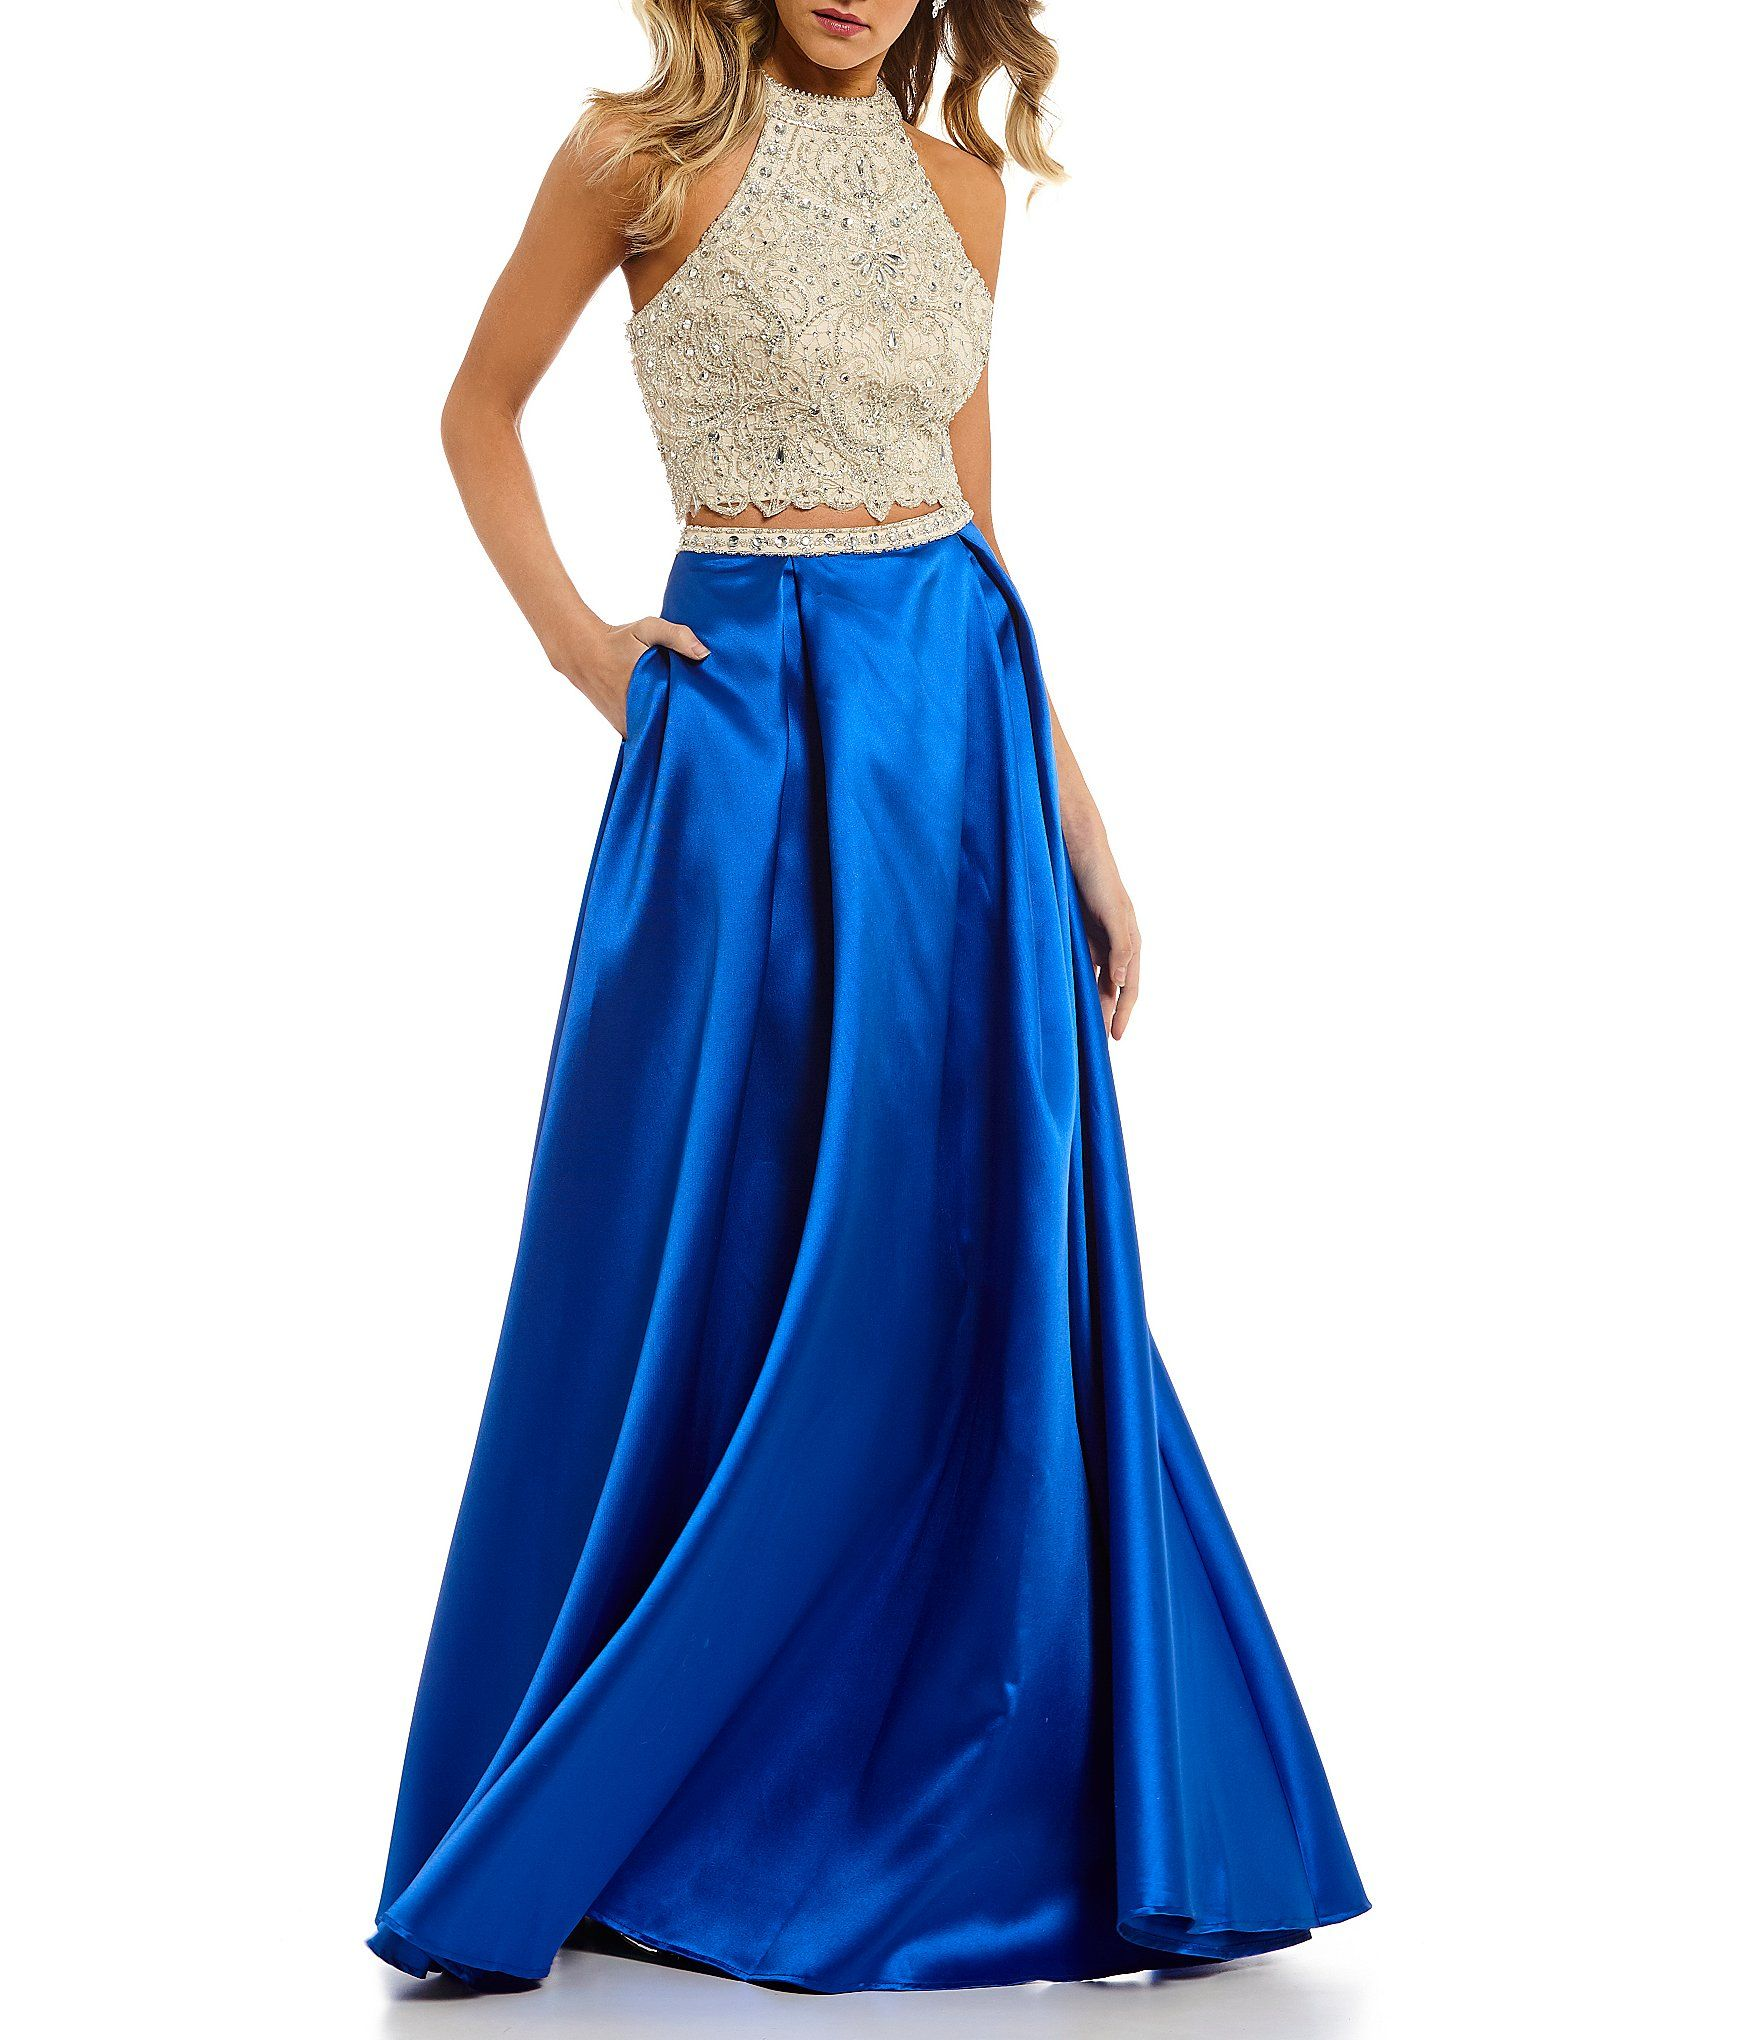 699cab6ac04 Coya Collection Intricate Beaded Bodice Two-Piece Long Dress  Dillards